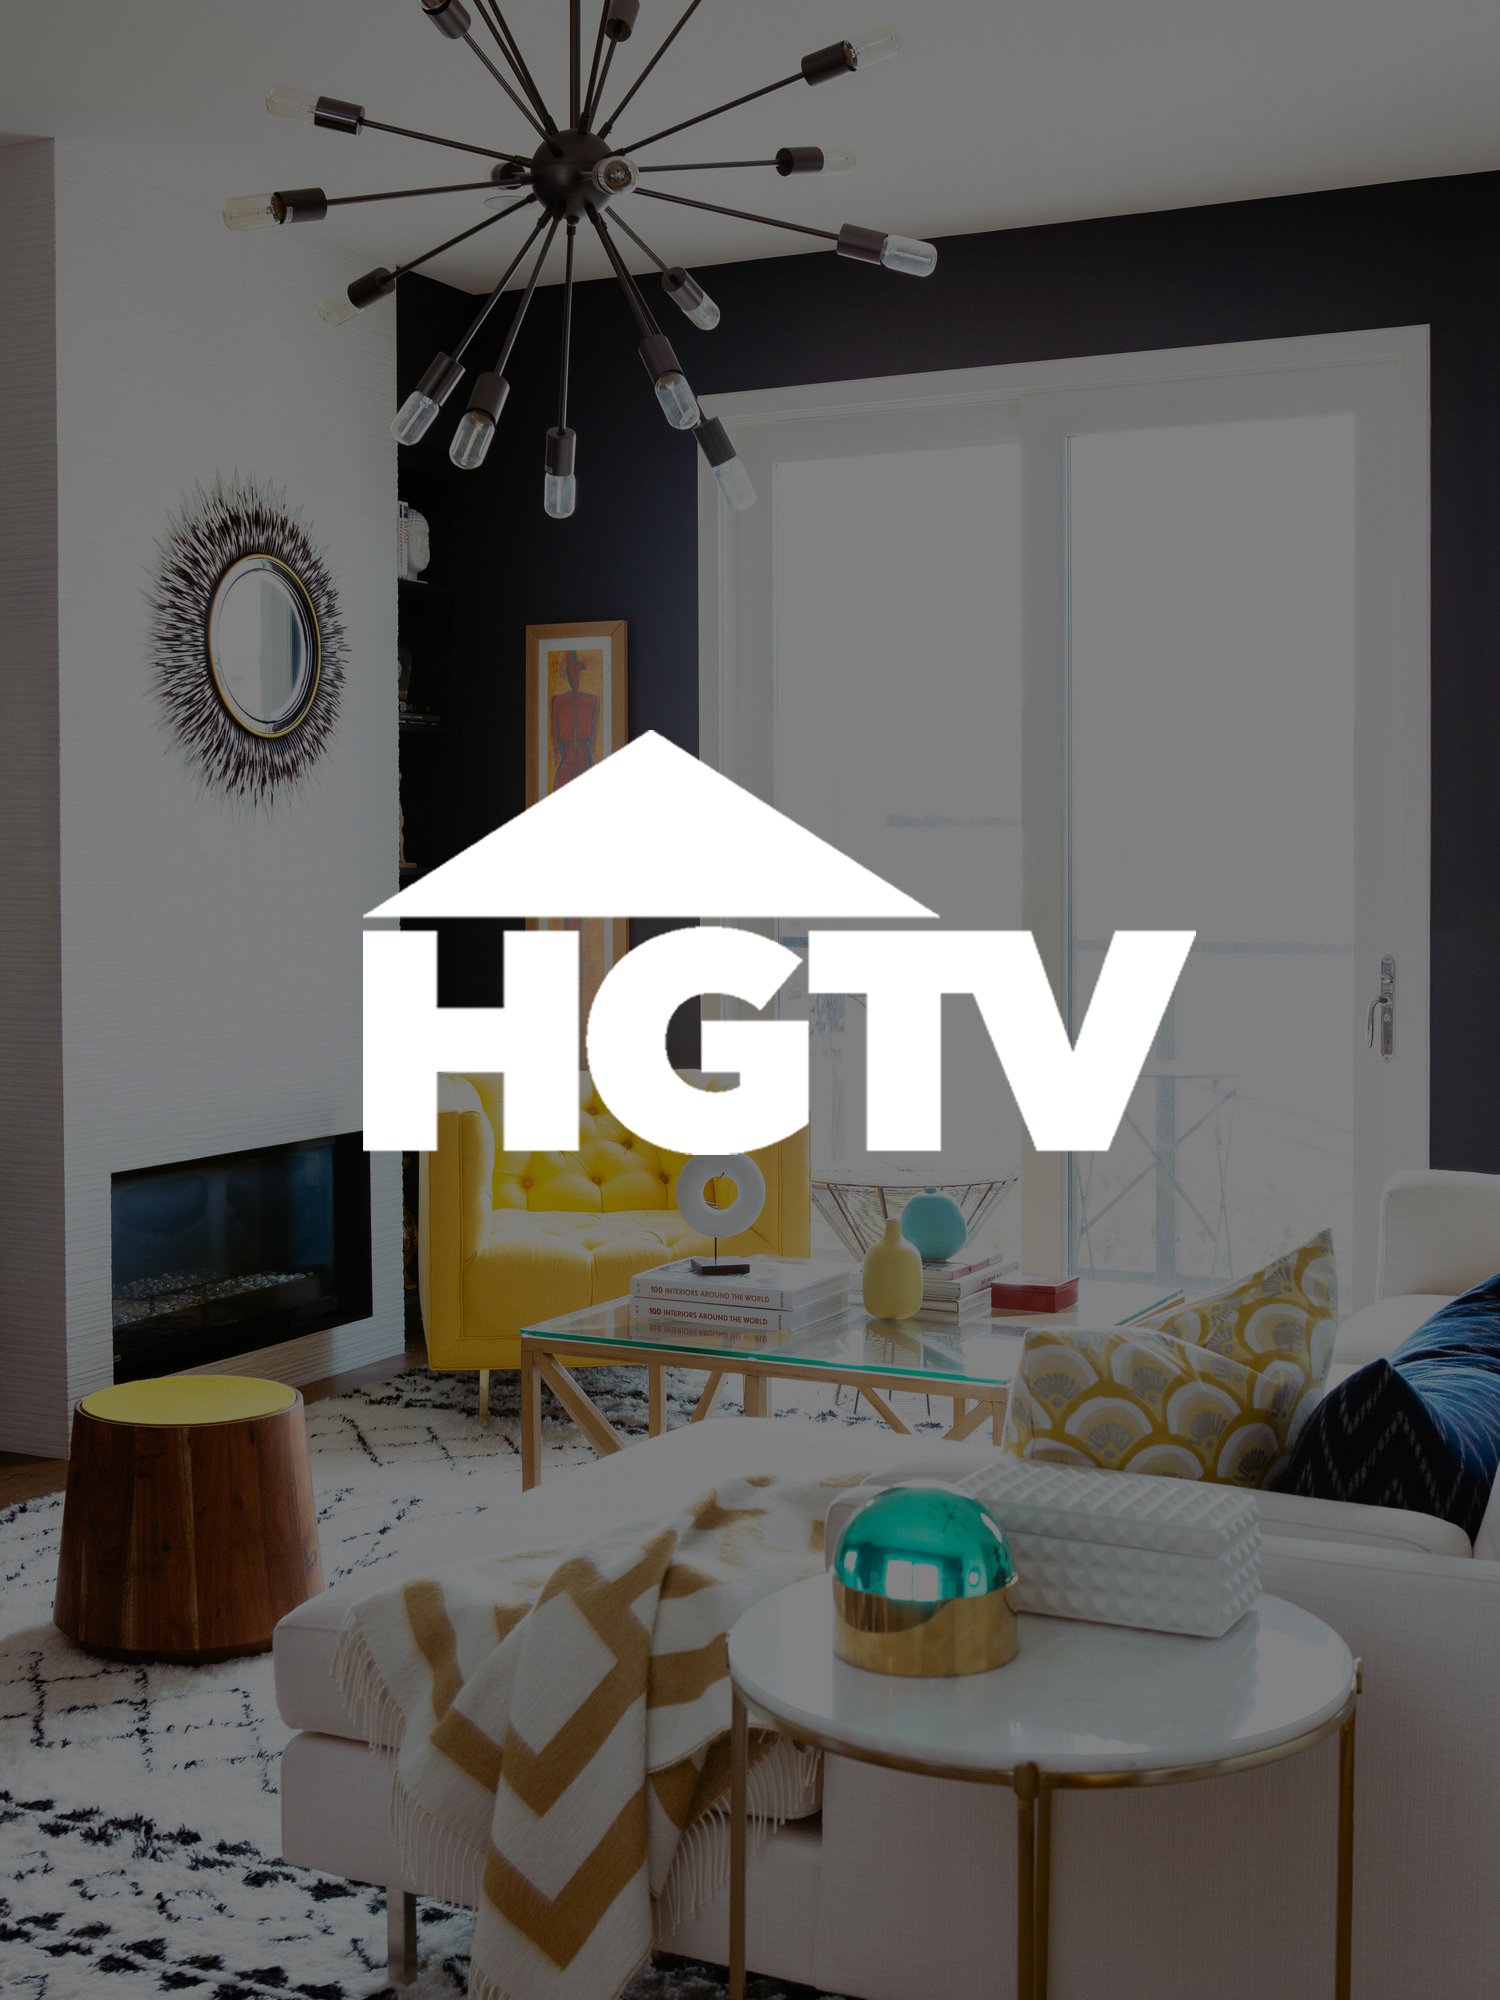 Noz Design | HGTV August 2017